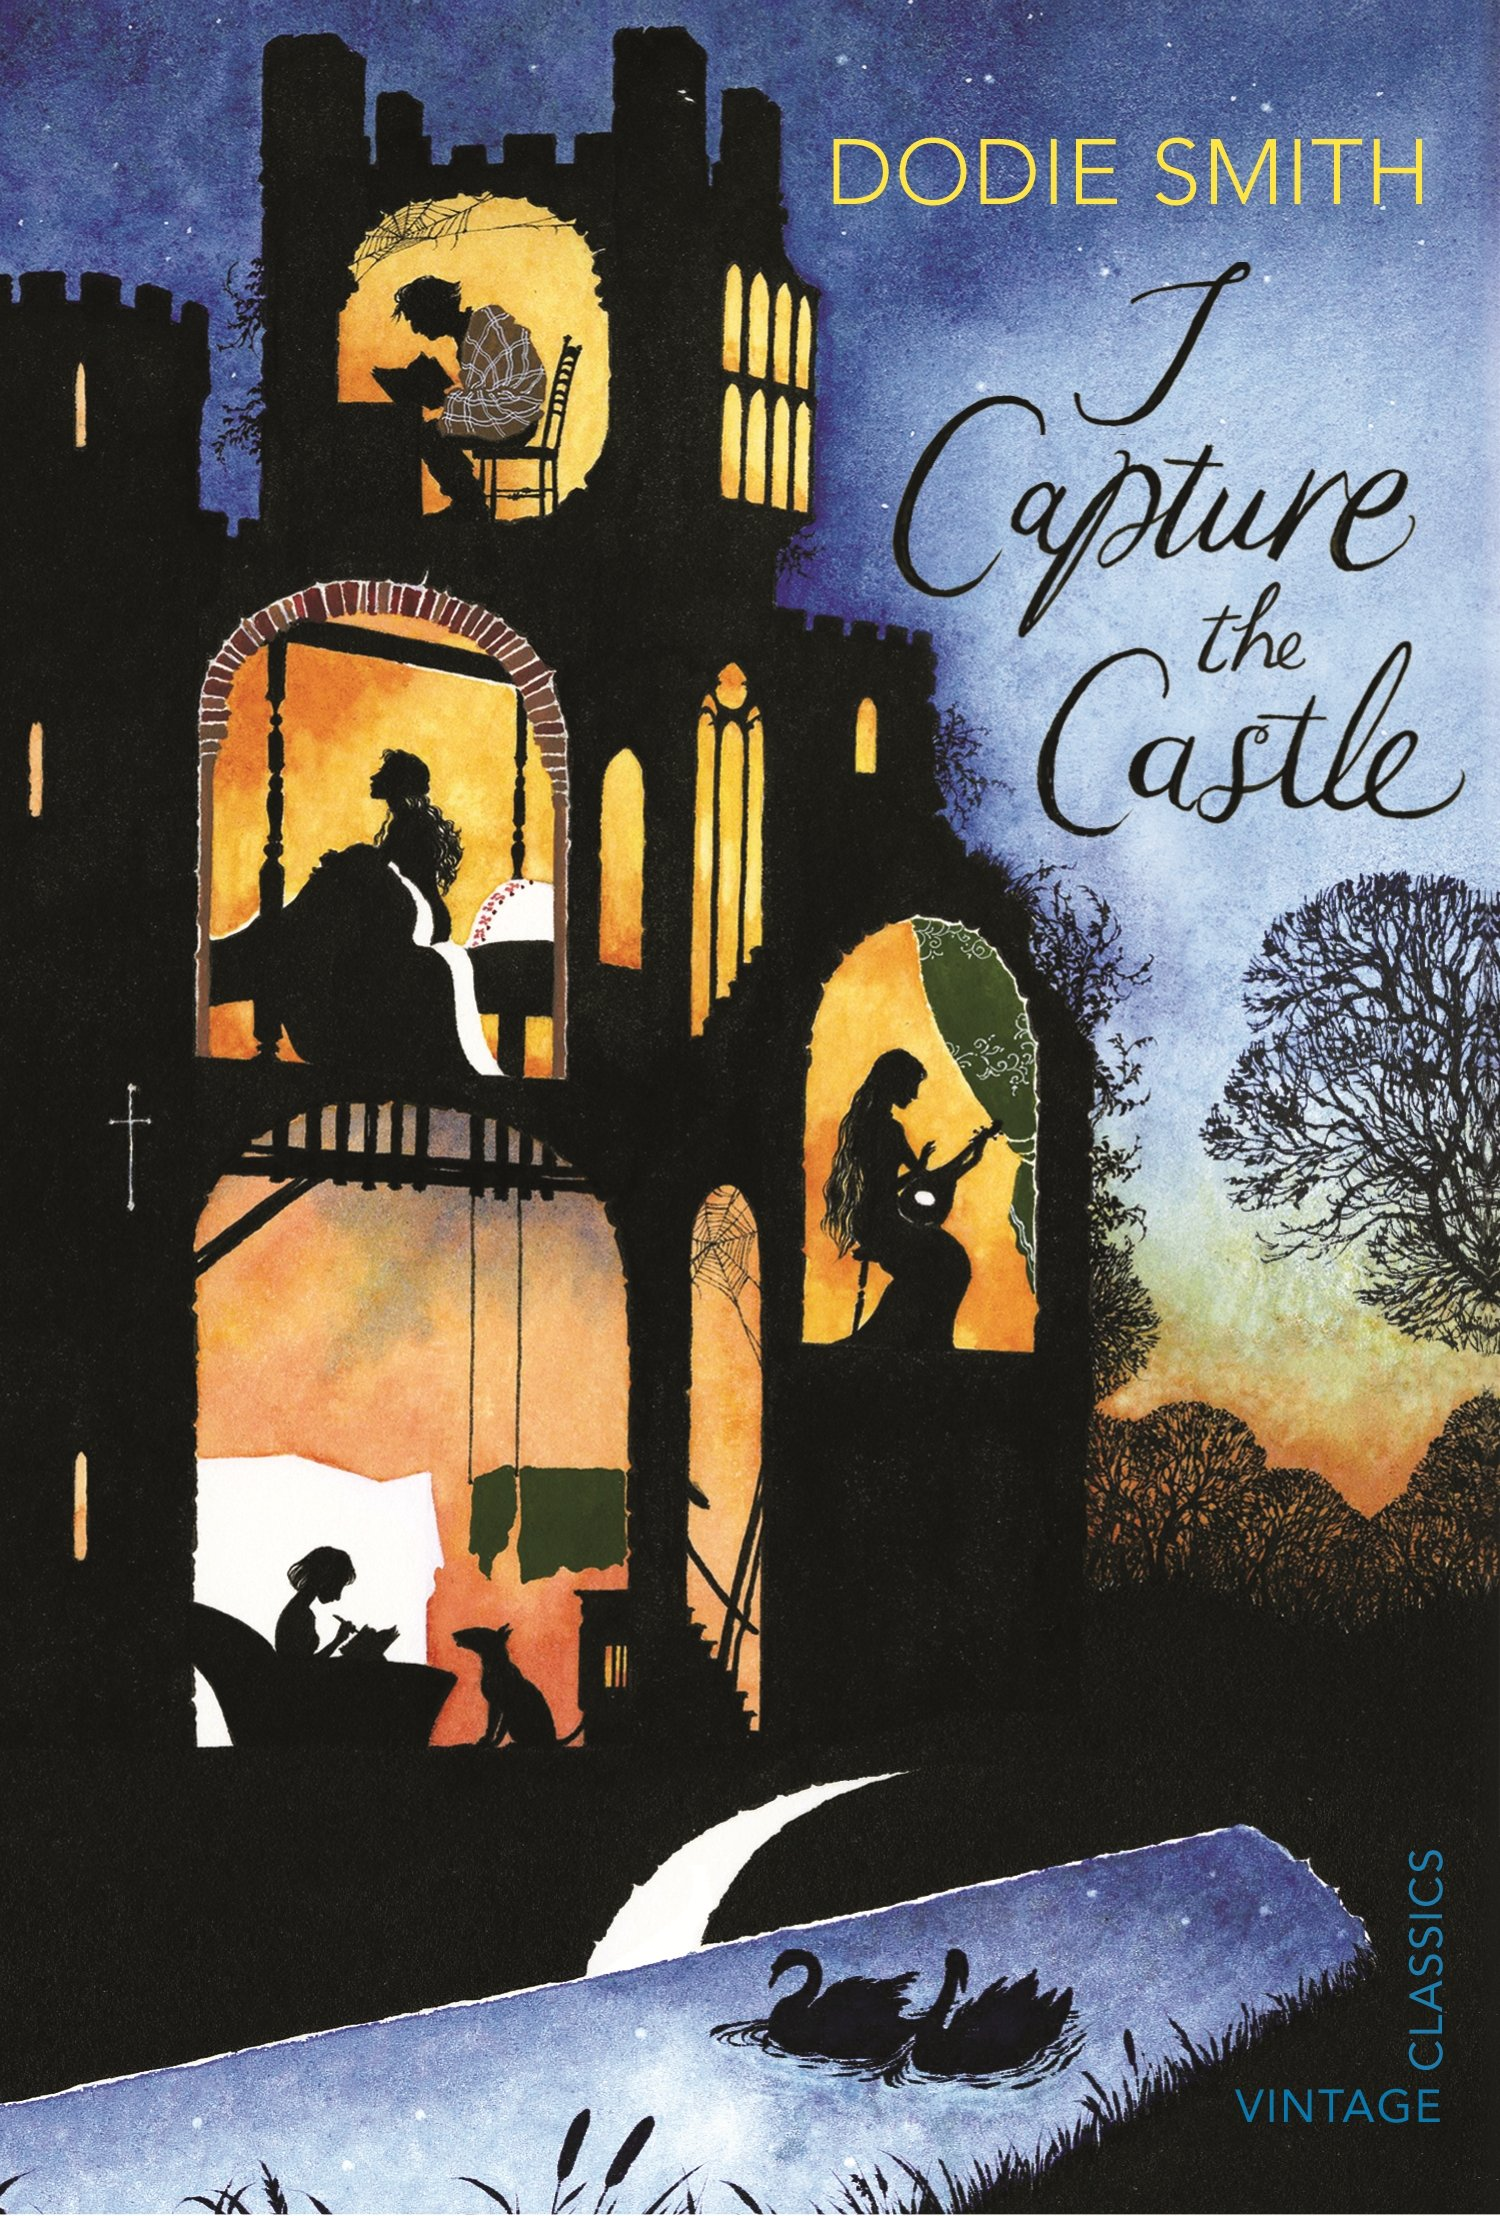 I Capture the Castle (Vintage Childrens Classics)